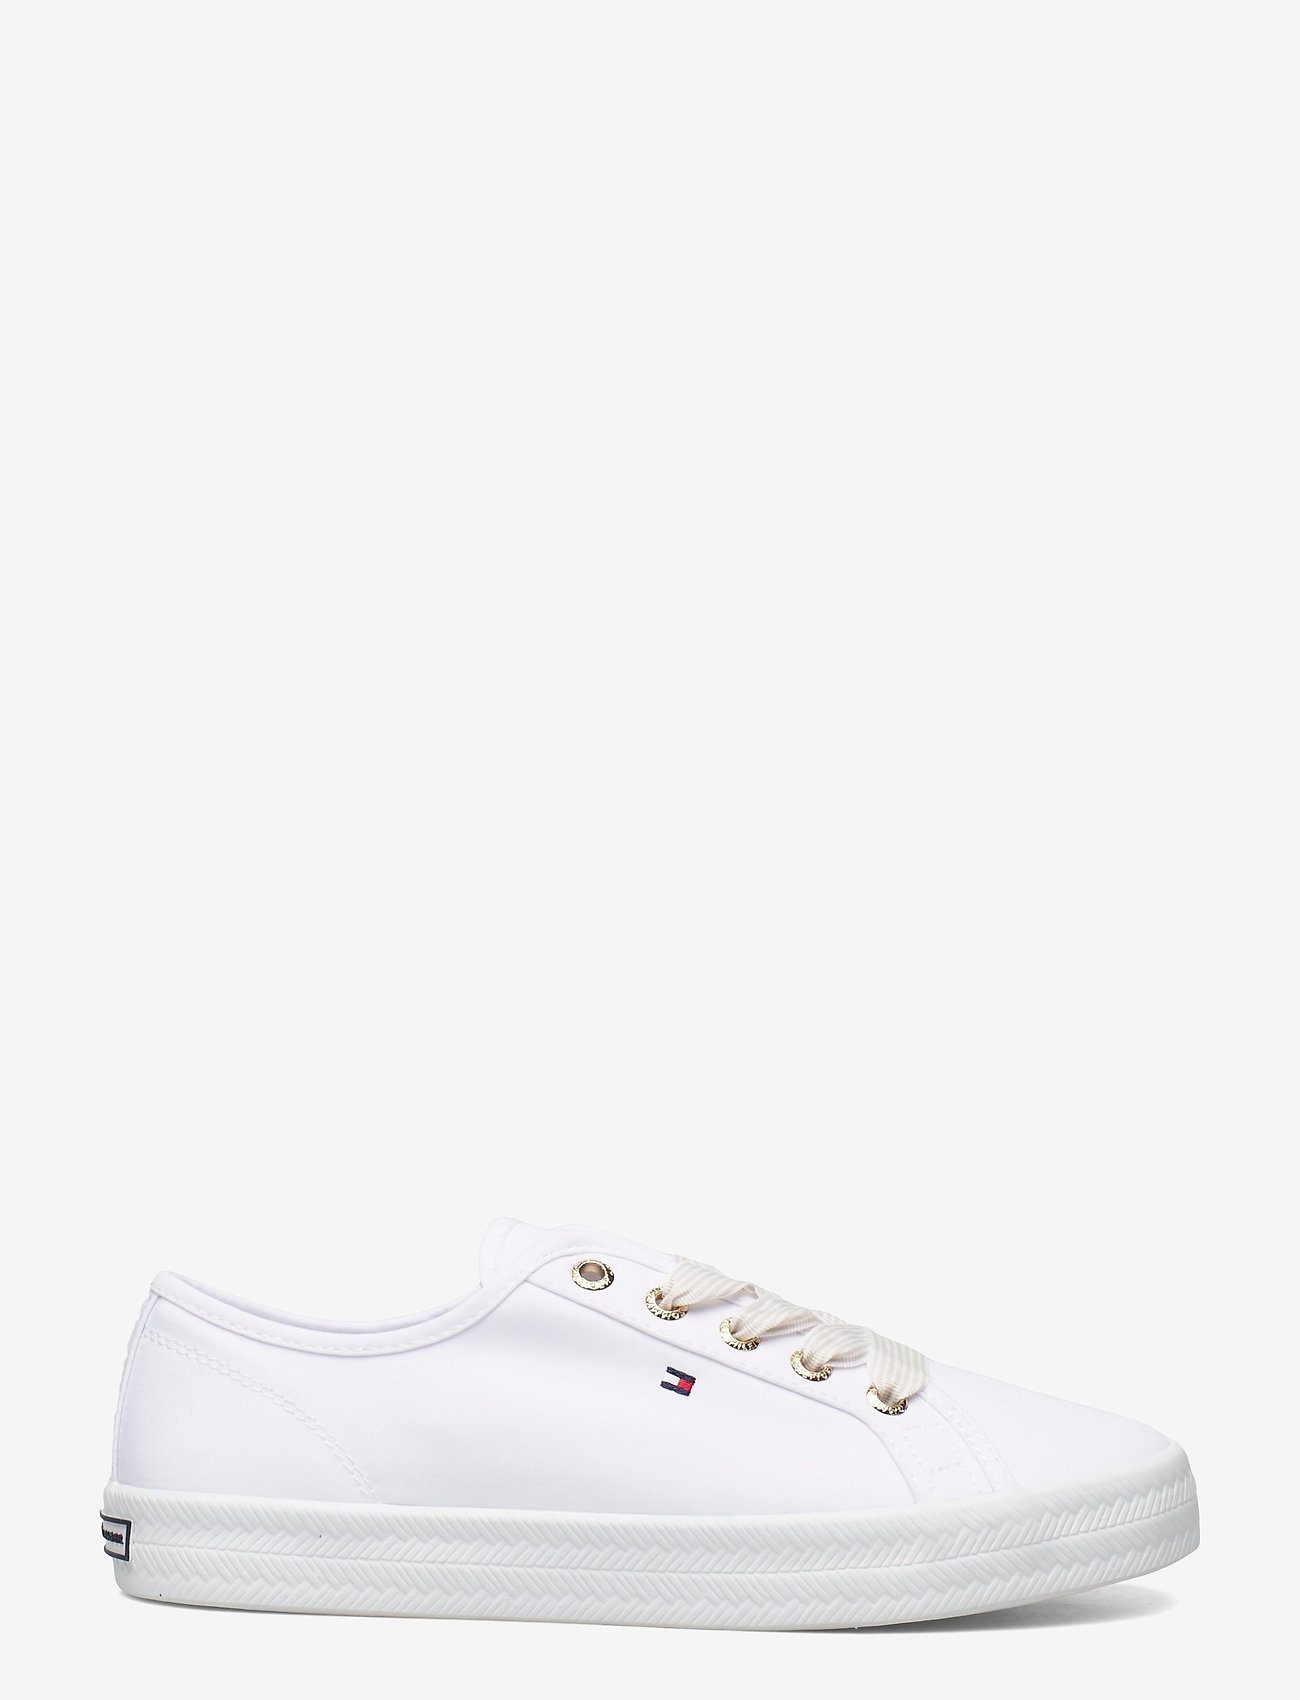 Tommy Hilfiger - ESSENTIAL NAUTICAL SNEAKER - low top sneakers - white - 1